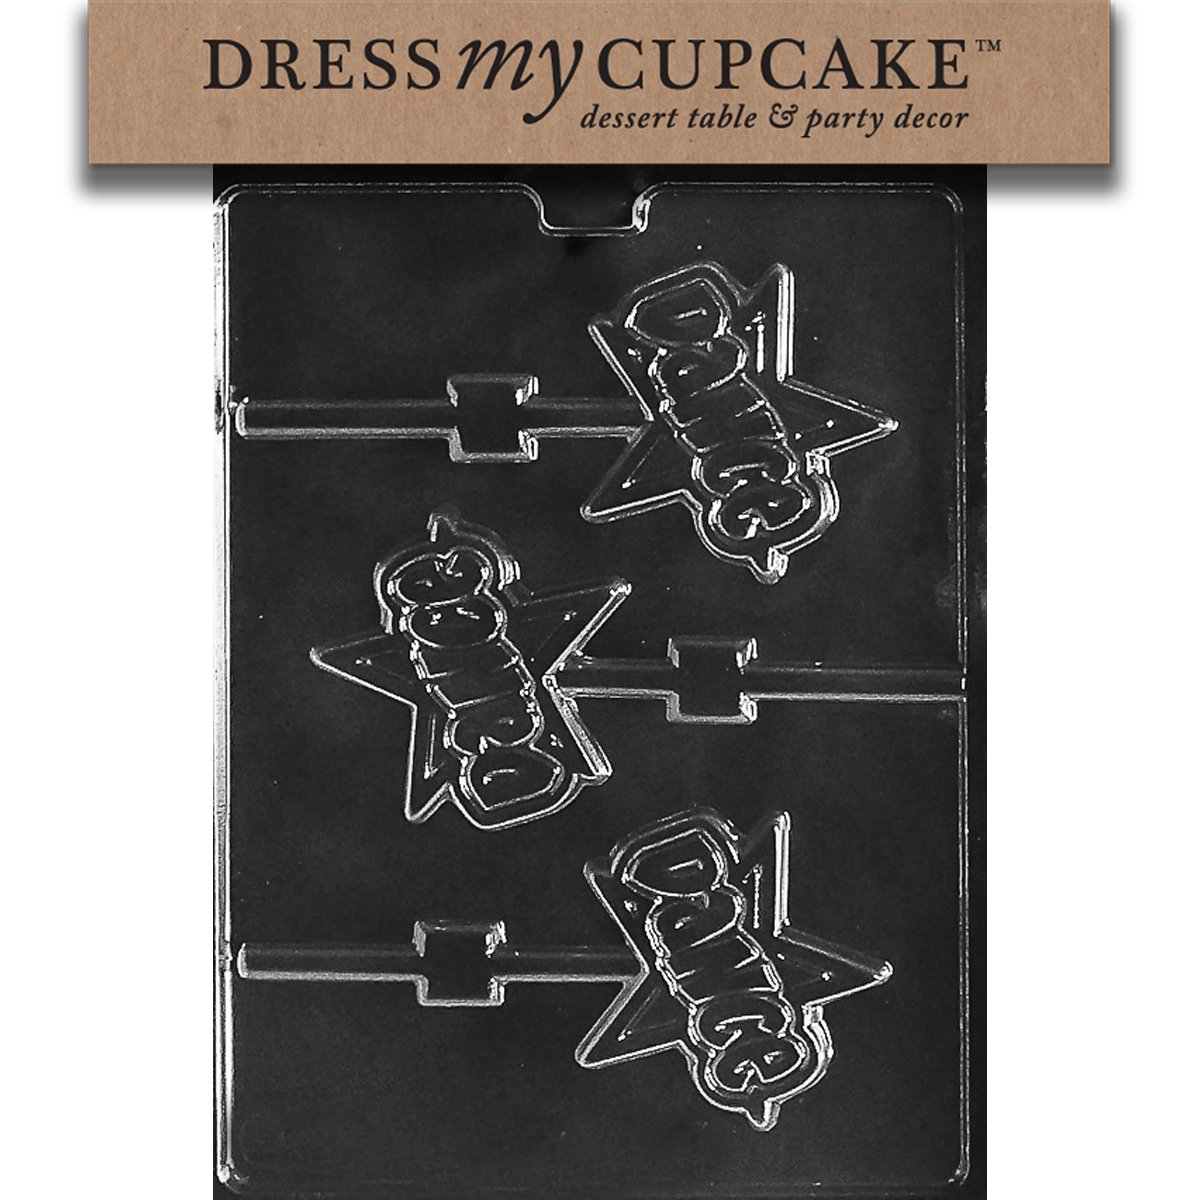 Dress My Cupcake DMCK161SET Chocolate Candy Mold, Dance Lollipop, Set of 6